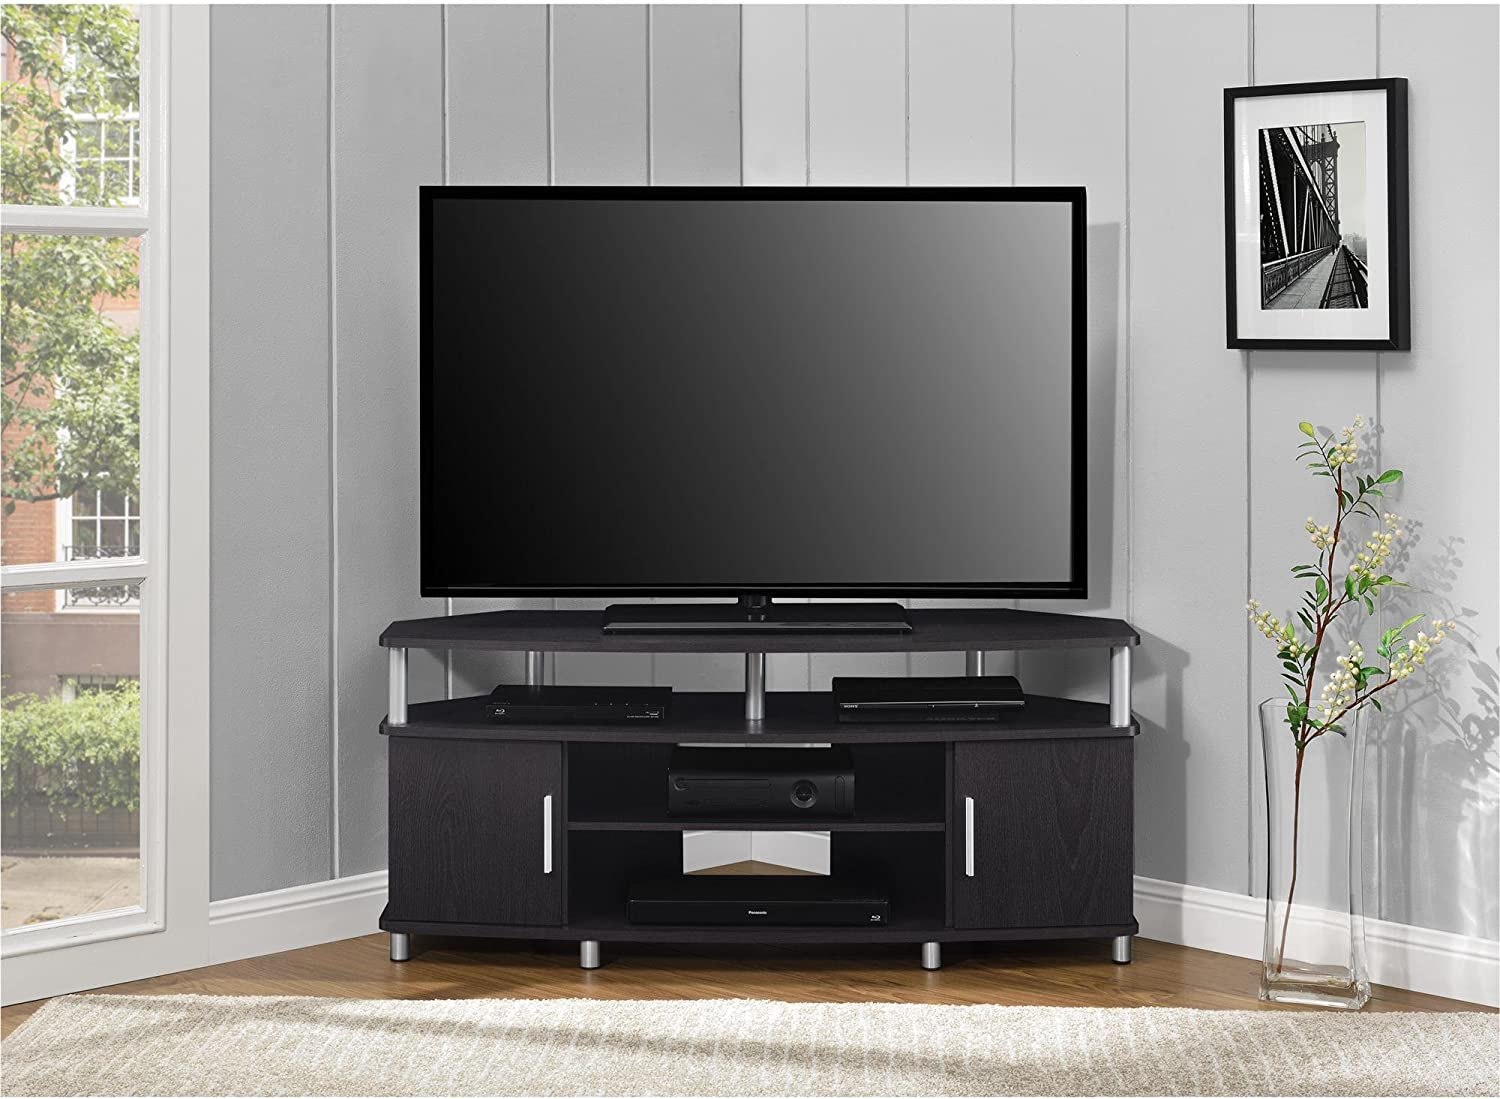 Ameriwood Home Carson Corner Tv Stand For Tvs Up To 50 Black Furniture Decor